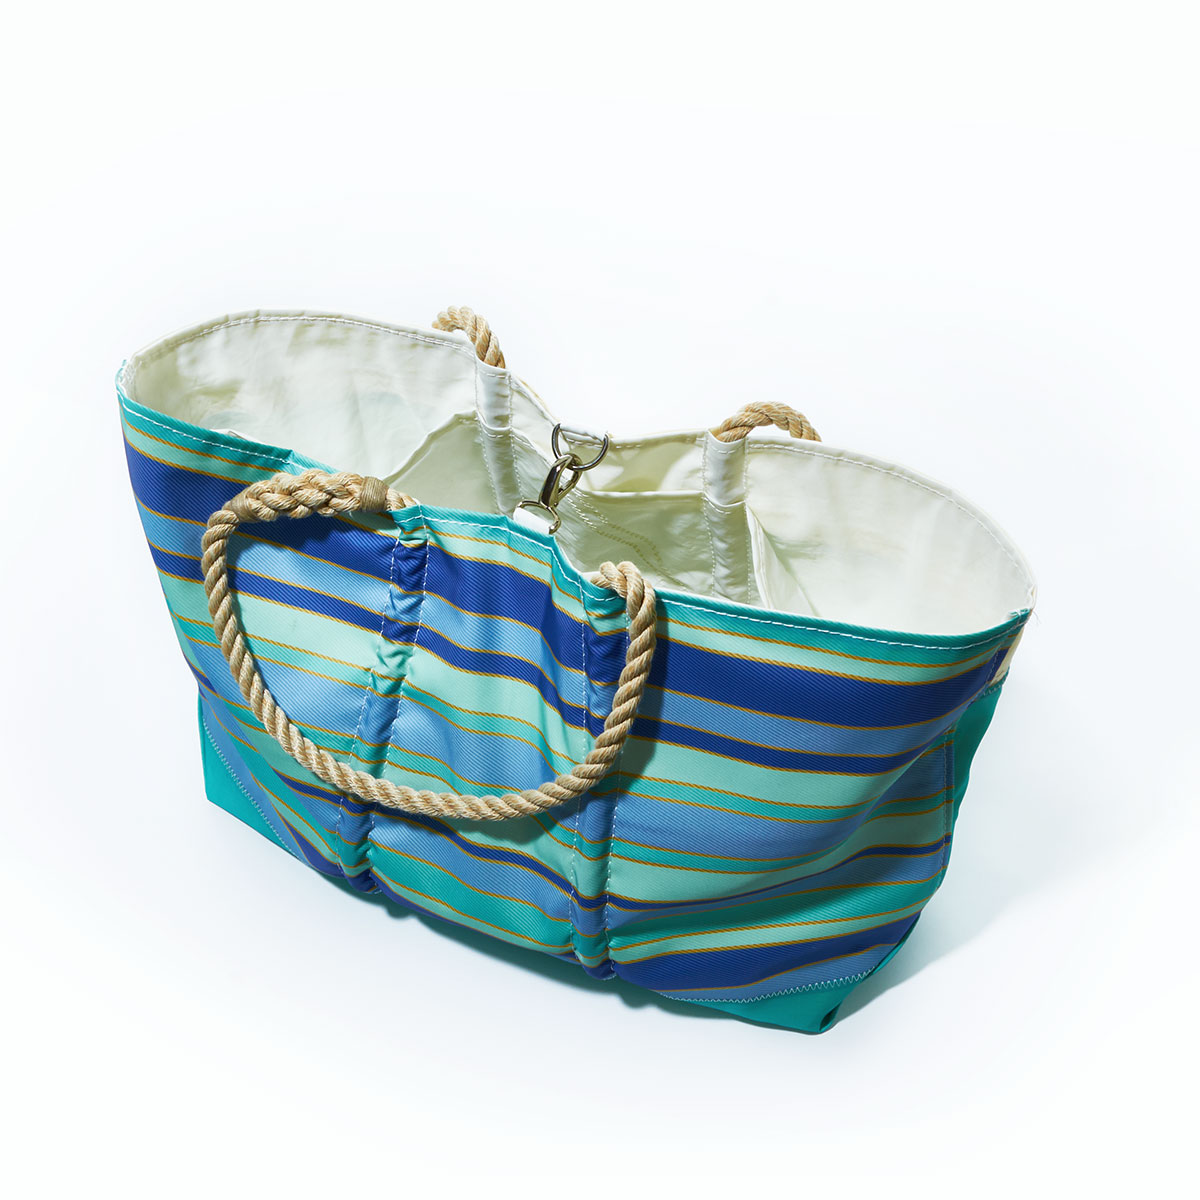 clasp closure, stripes of shades of blues are printed on this recycled sail cloth tote, with a seafoam green bottom and hemp rope handles